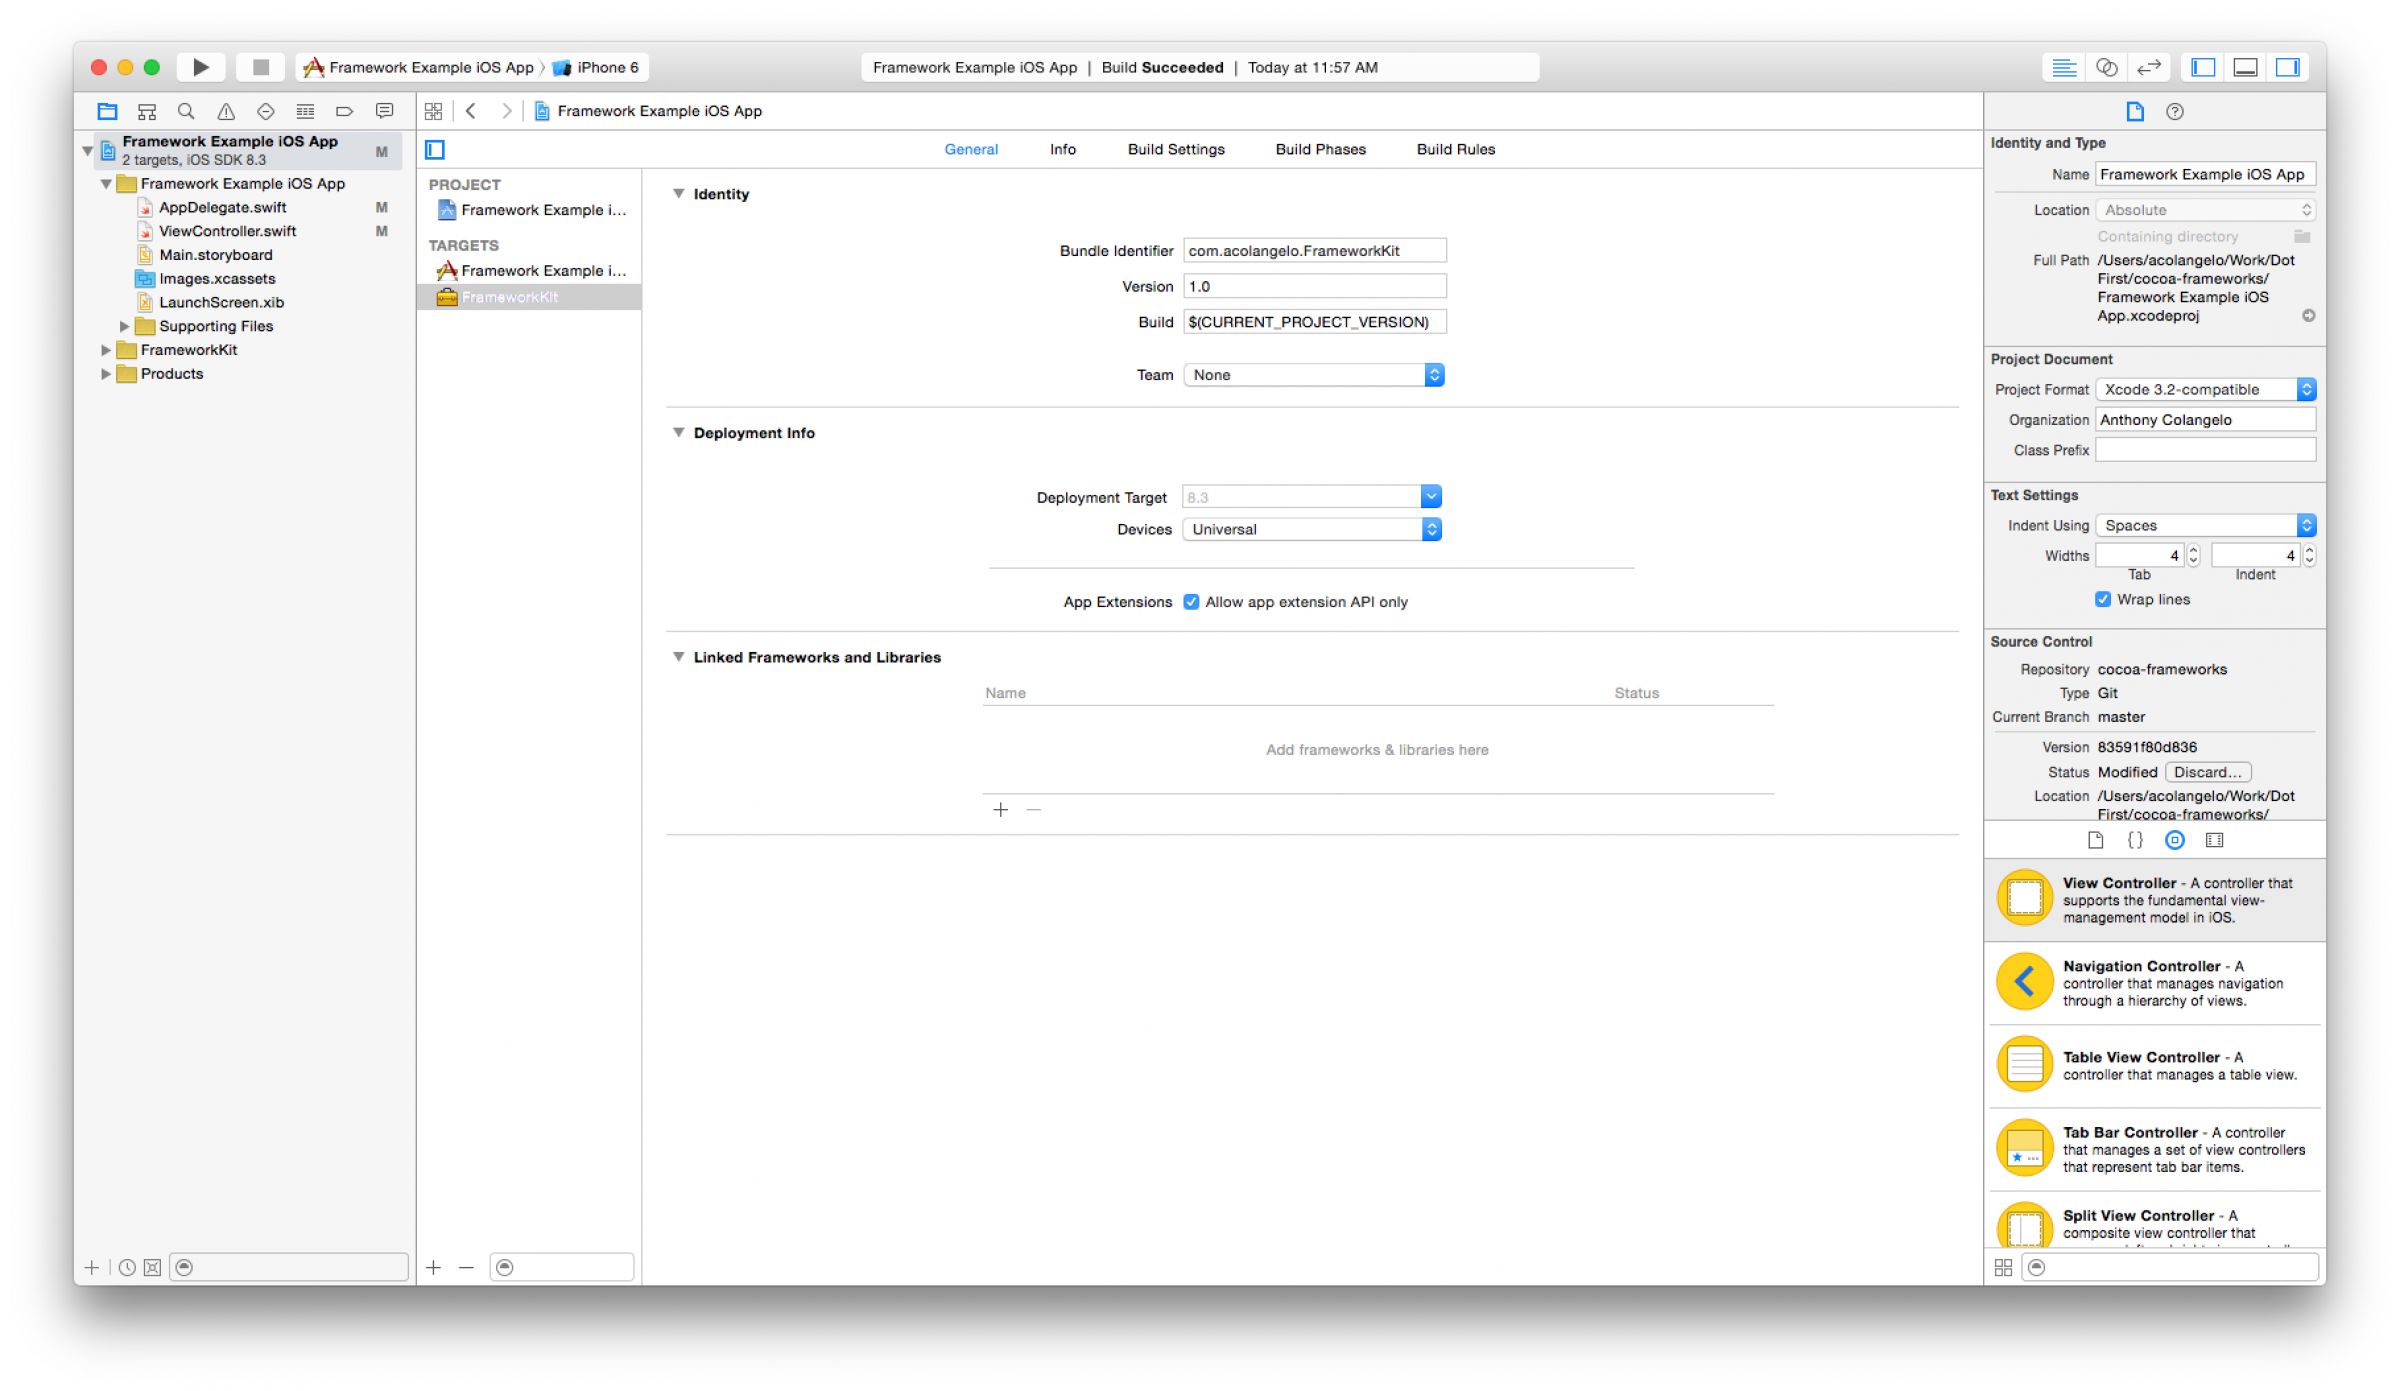 Cross-Platform Frameworks in Xcode: App Extension settings